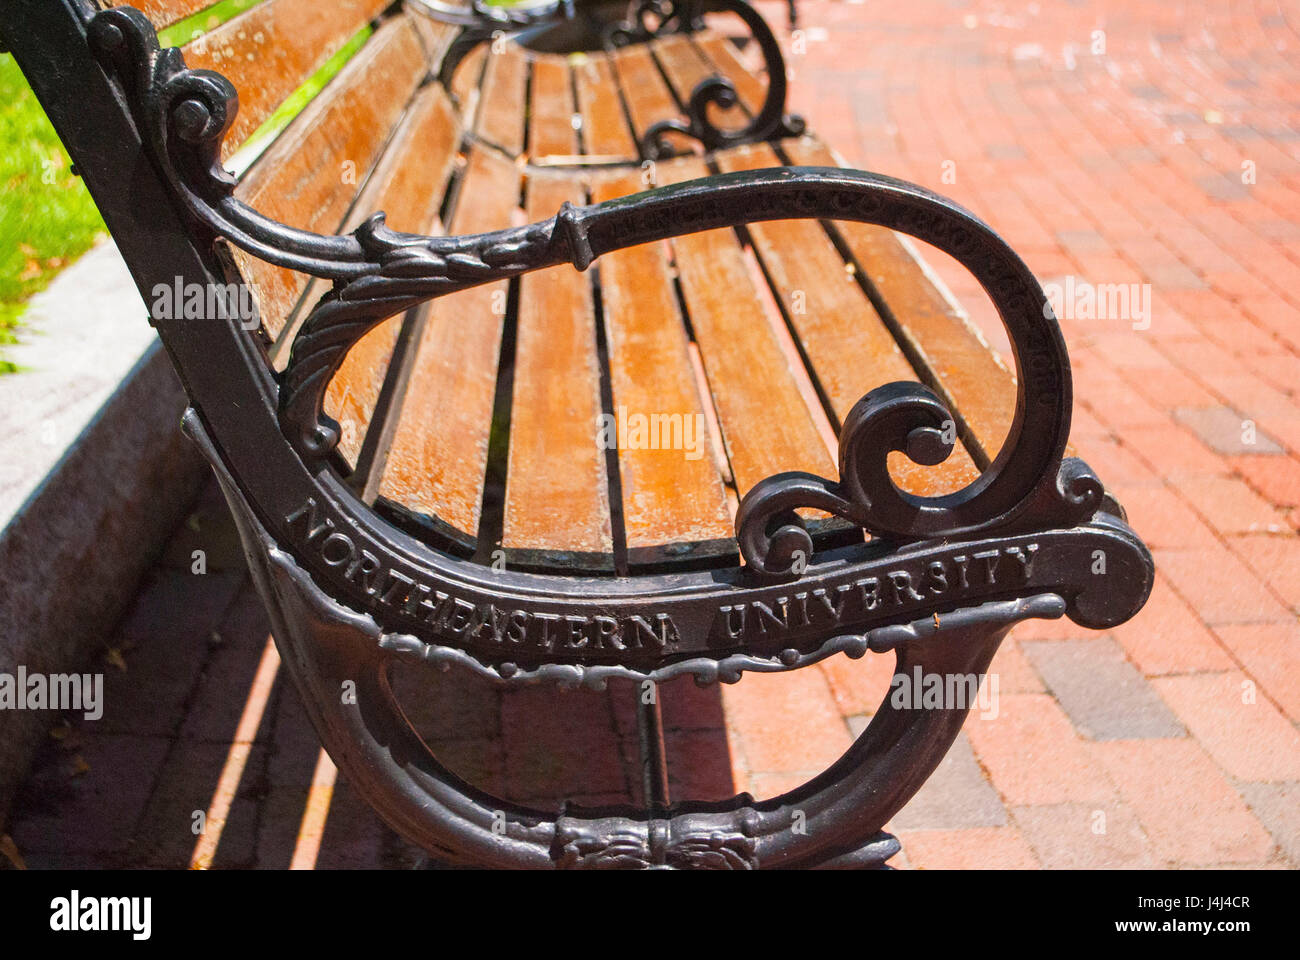 Northeastern University Park Bench - Stock Image